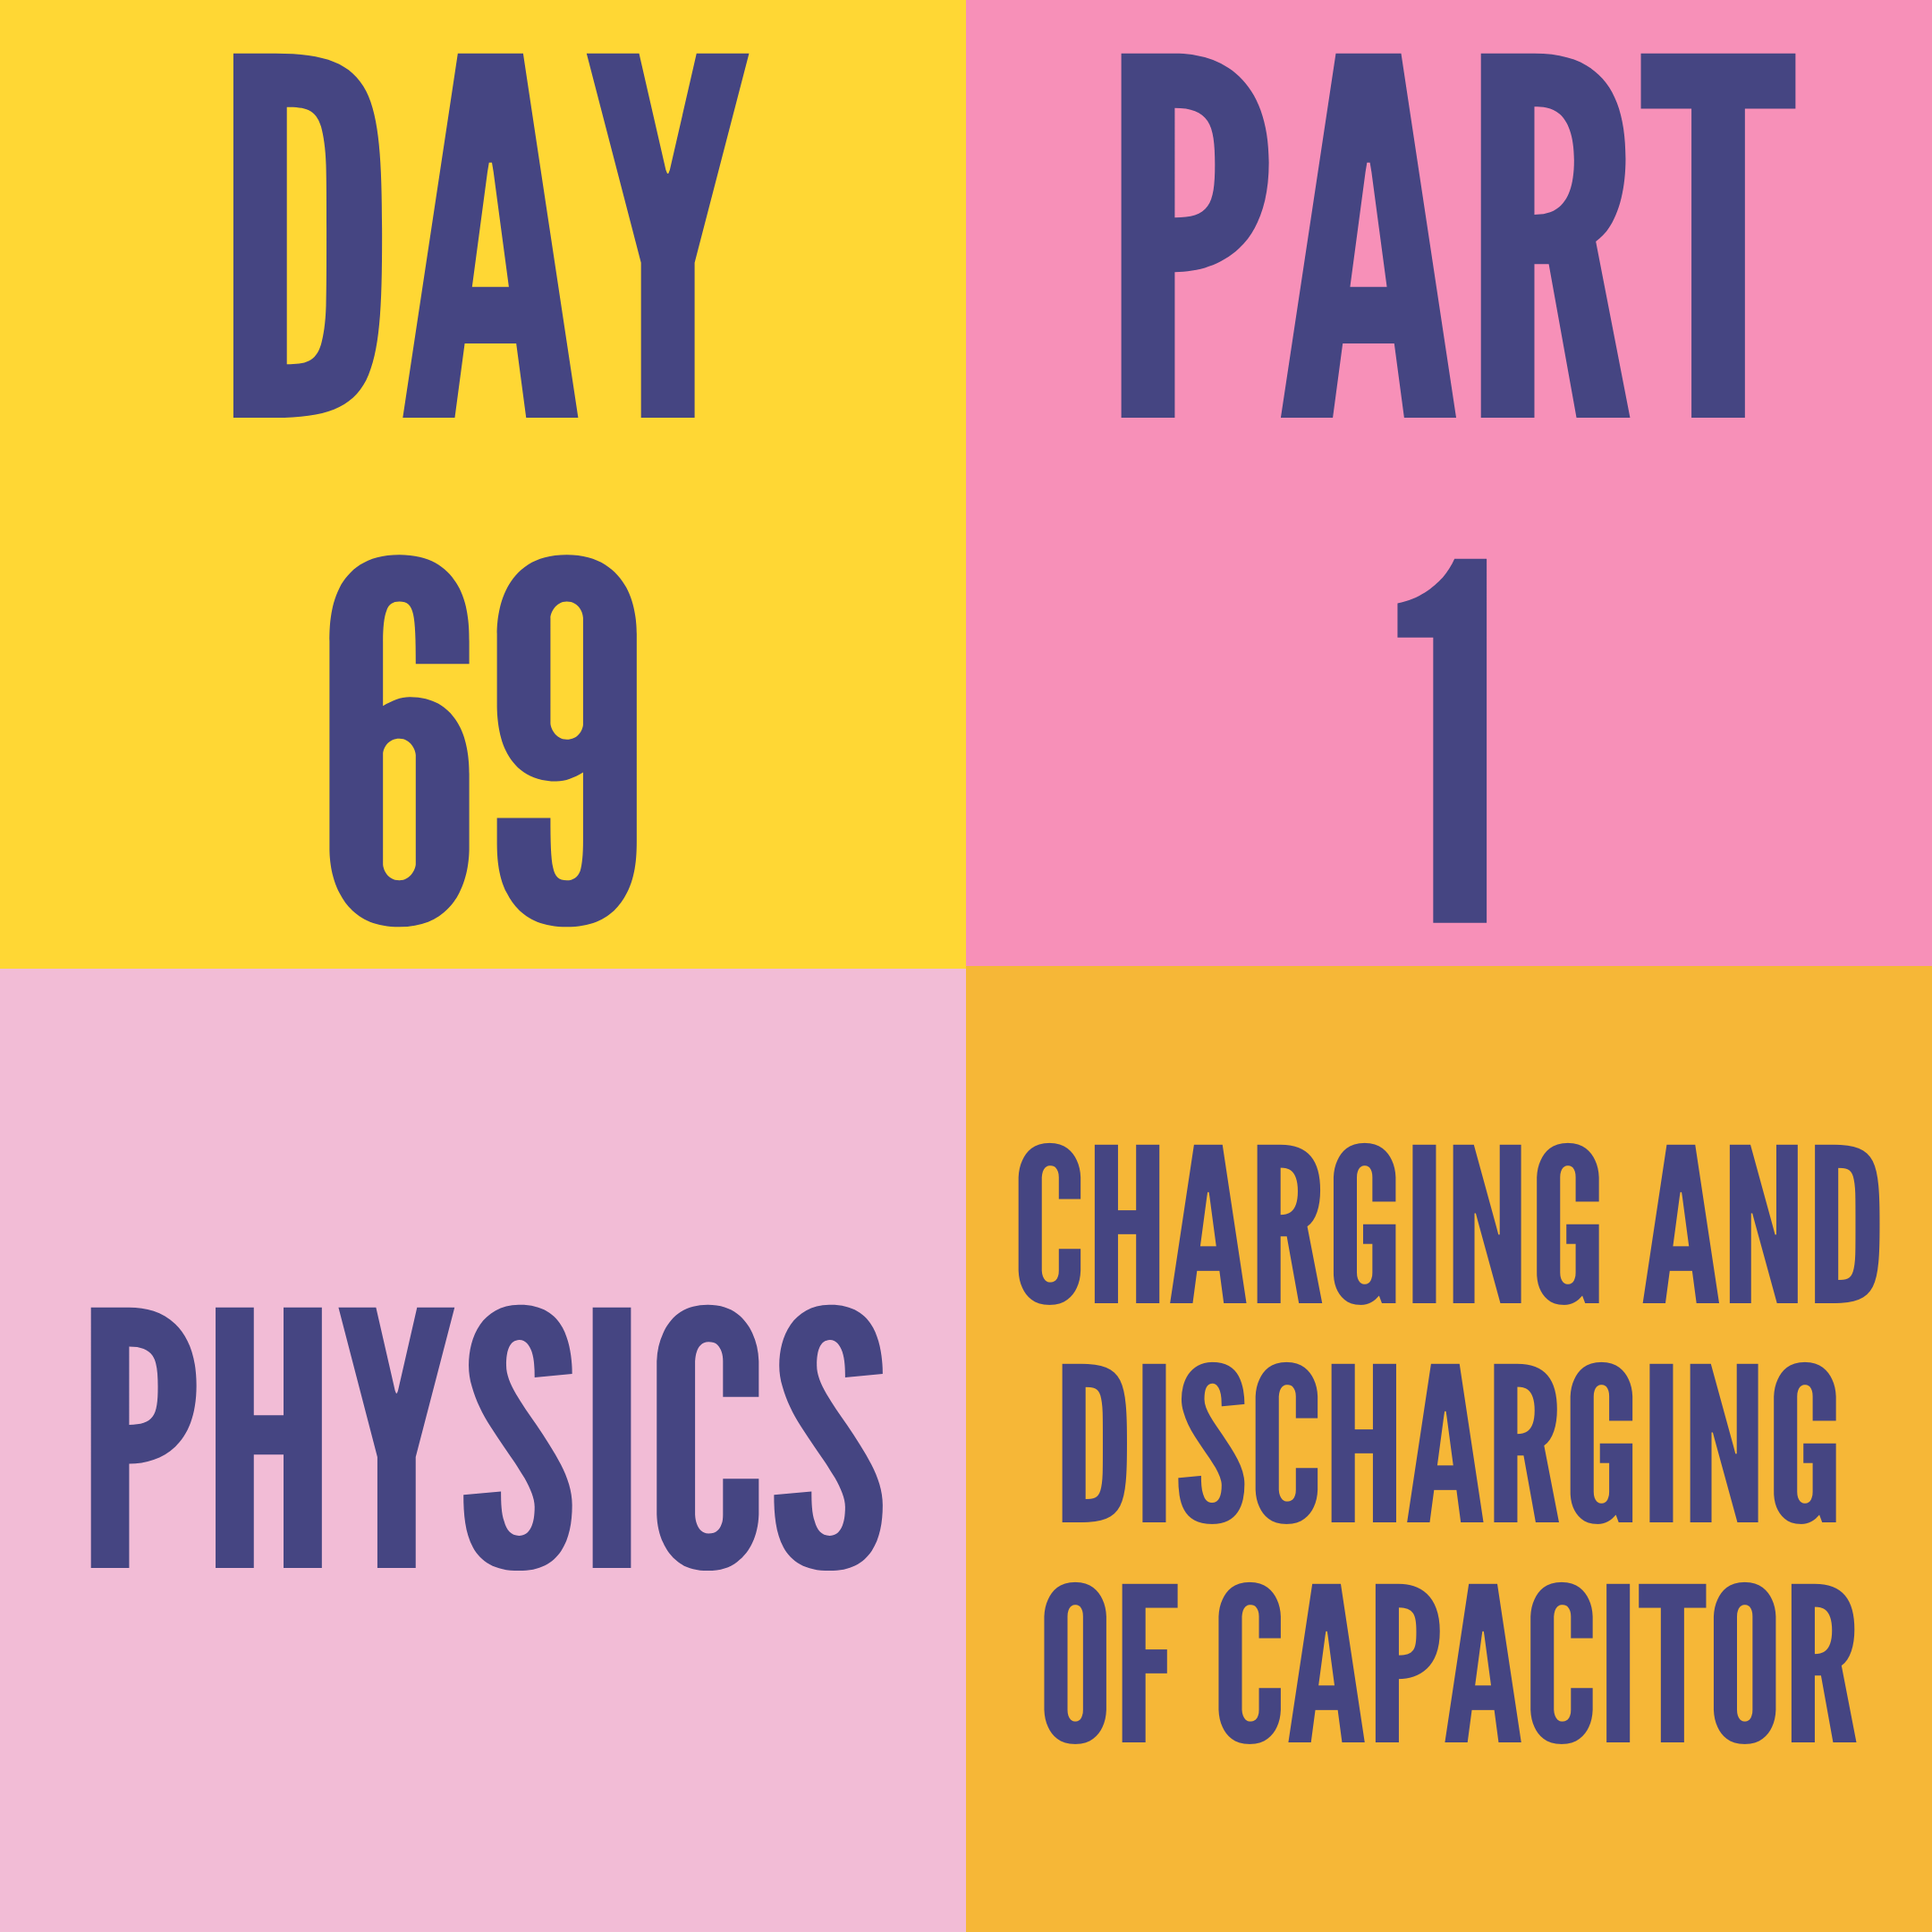 DAY-69 PART-1  CHARGING AND DISCHARGING OF CAPACITOR